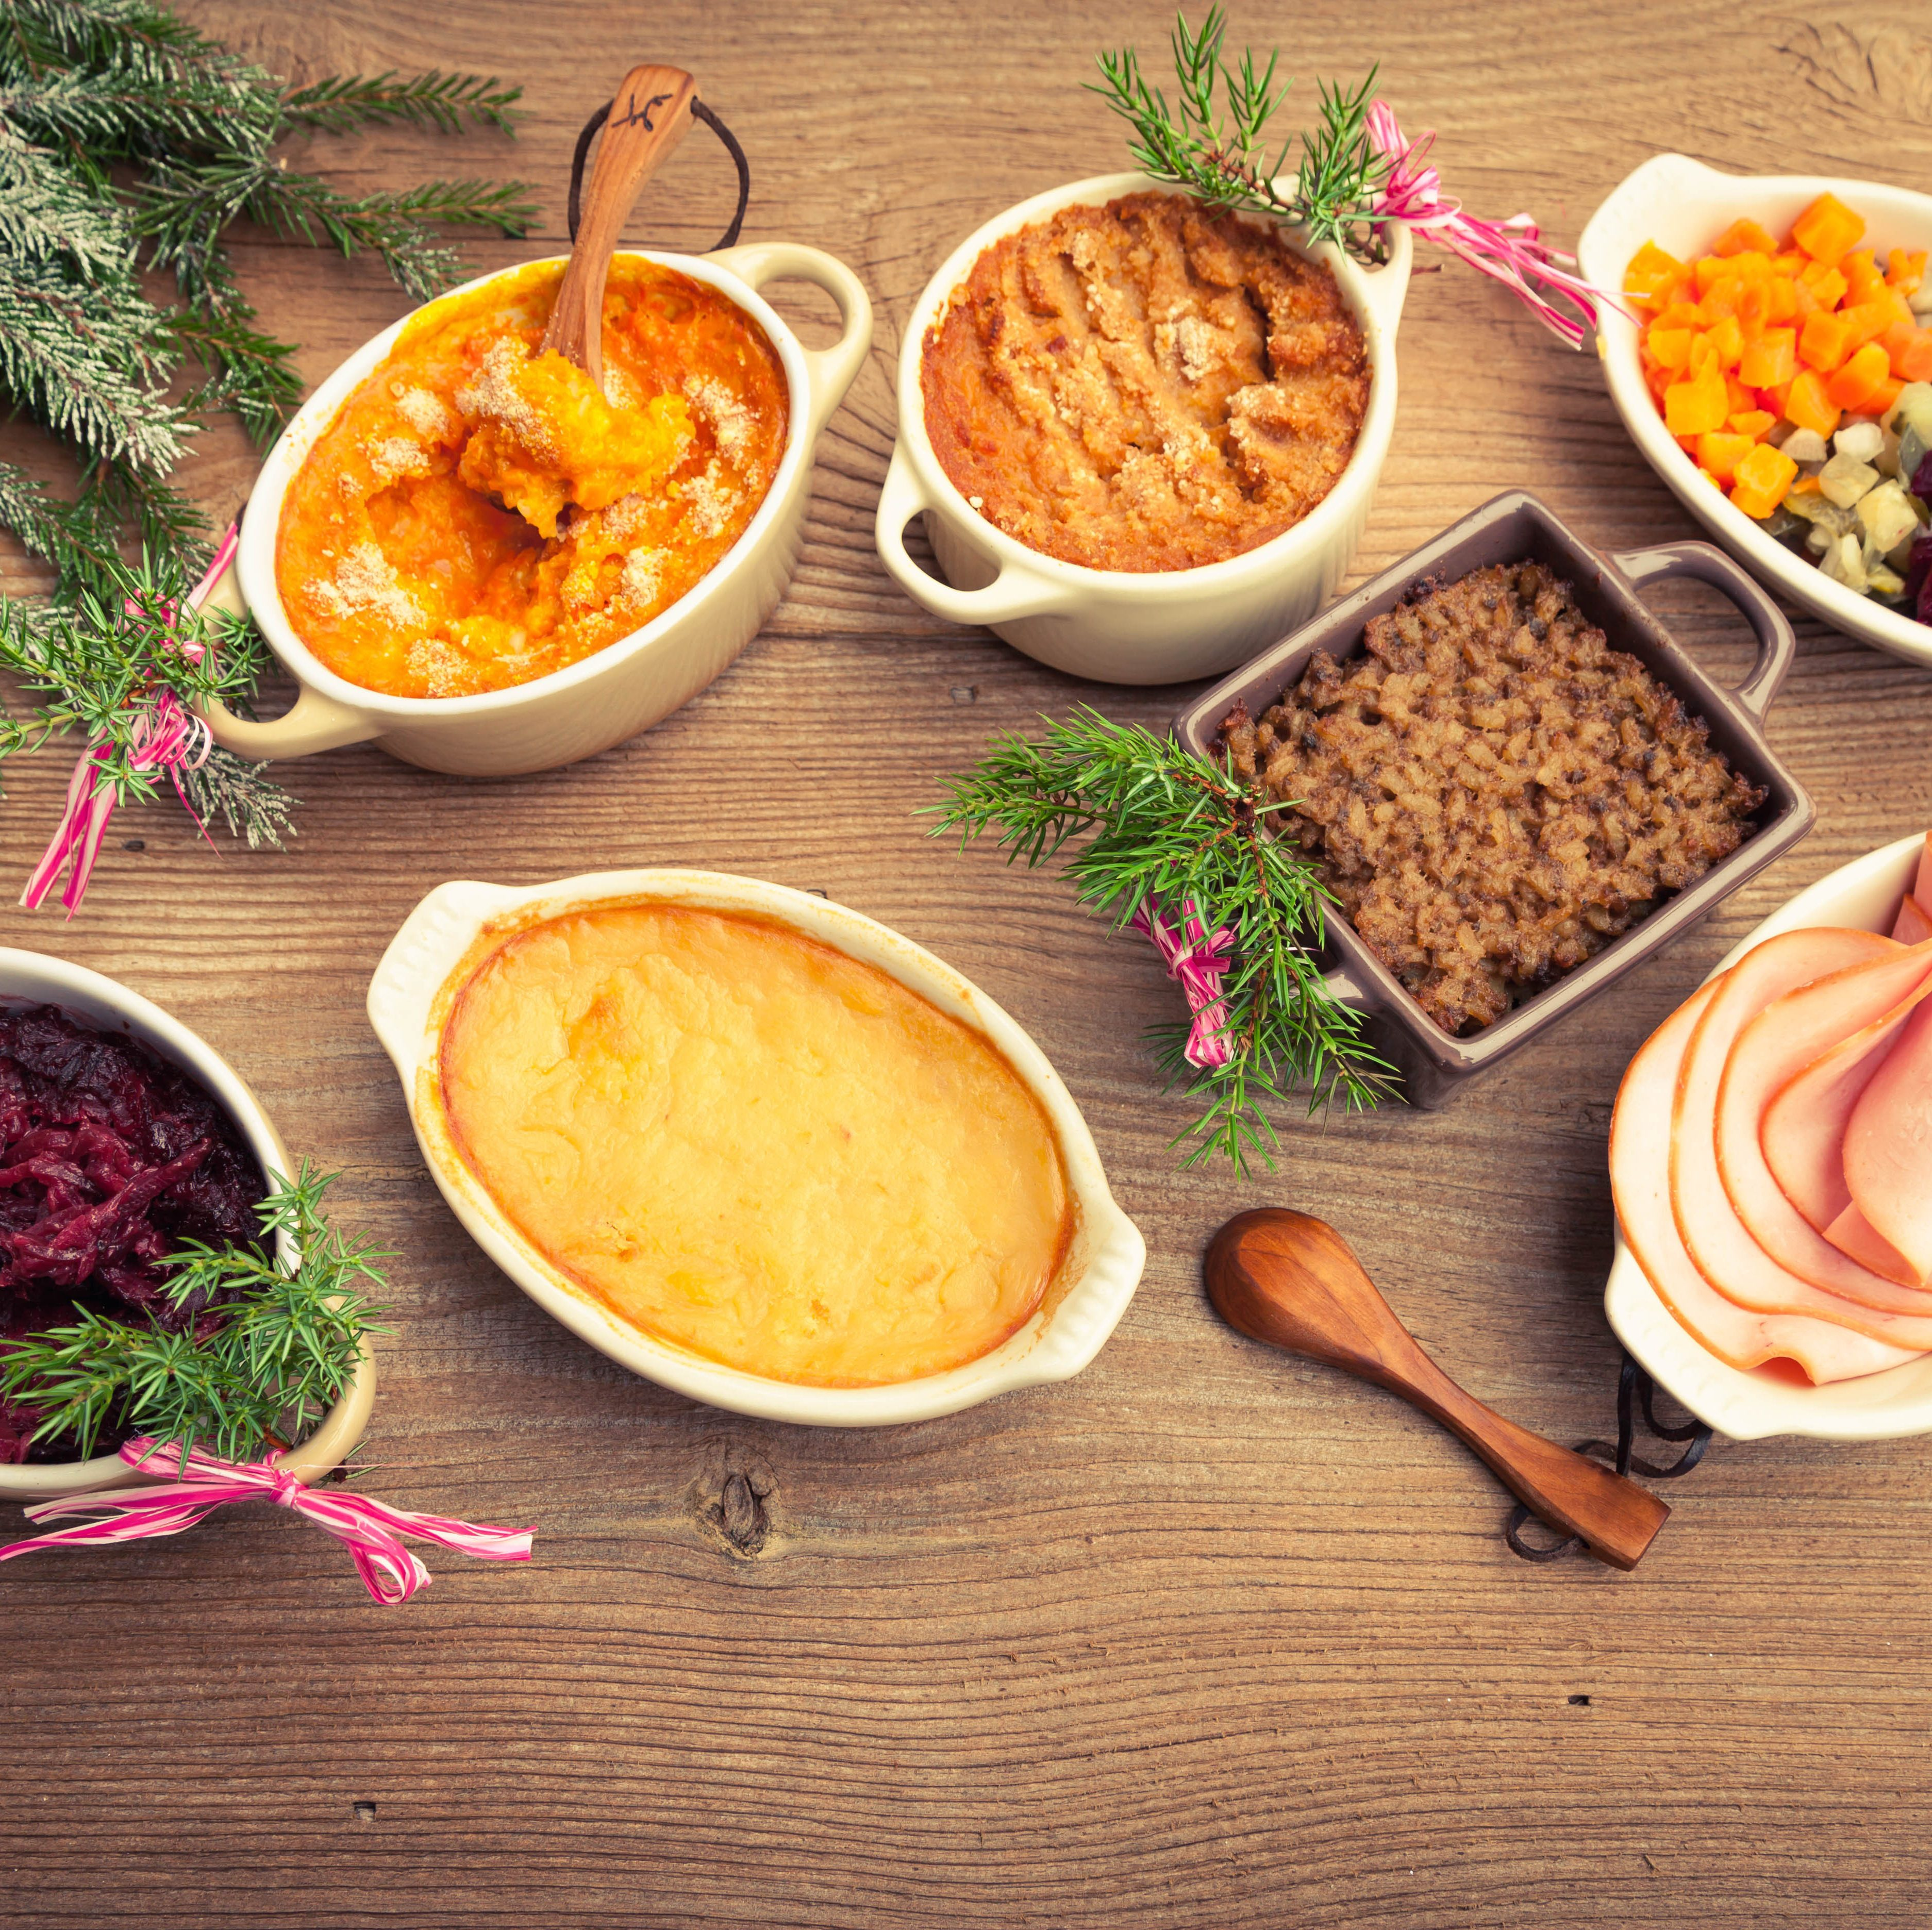 Finnish traditional Christmas table. Top view. Rustic style